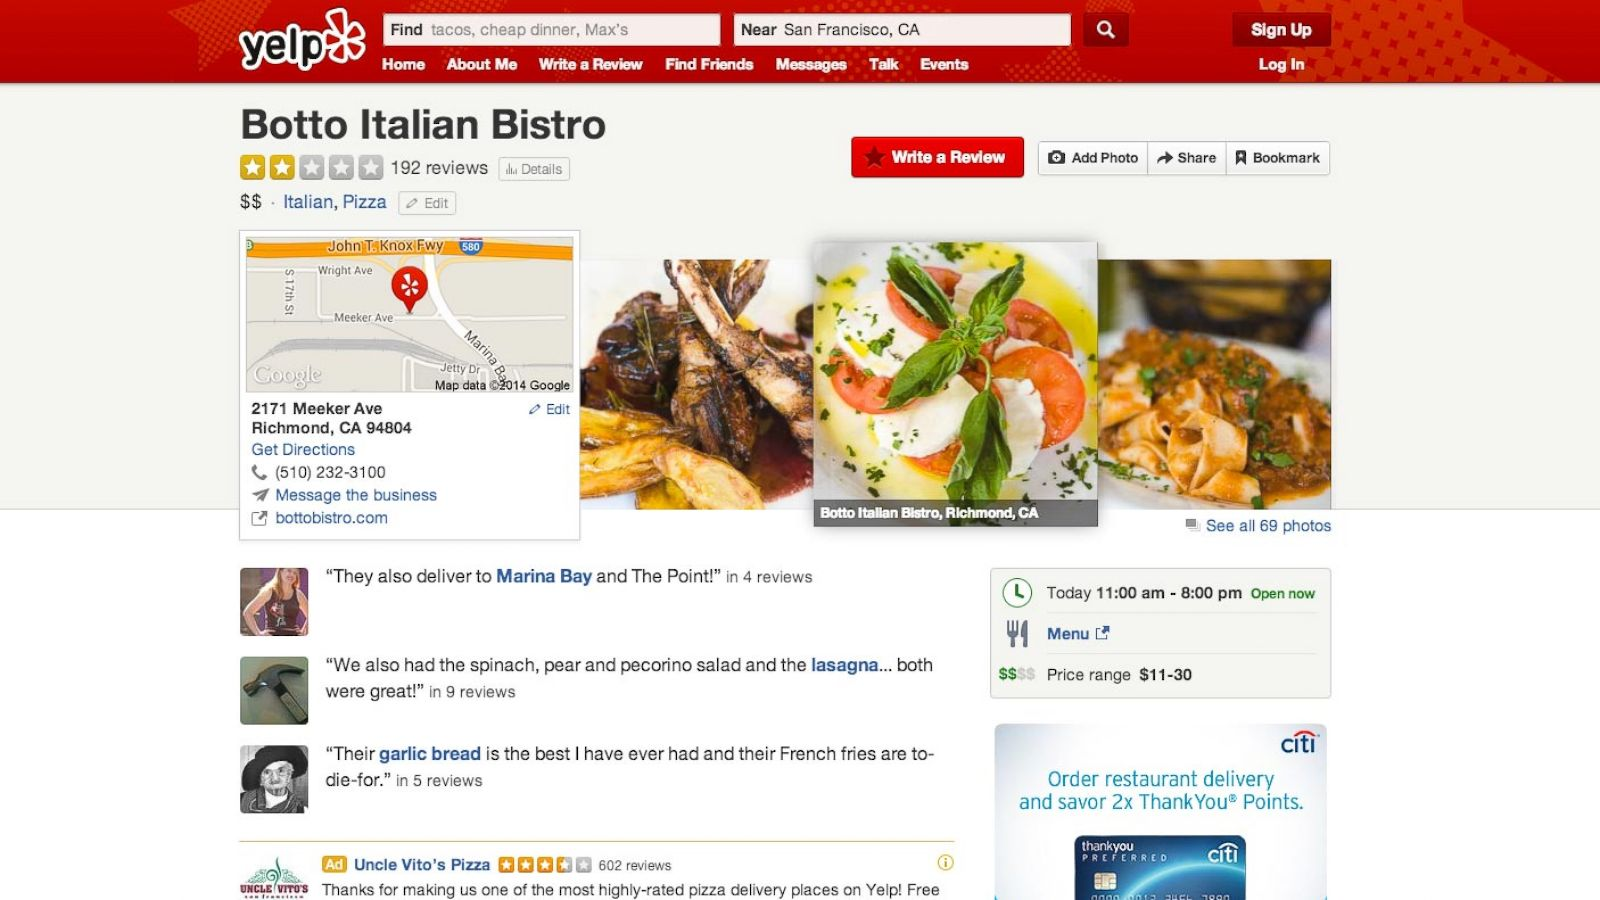 On a Quest to Be Yelp's Worst Restaurant - ABC News